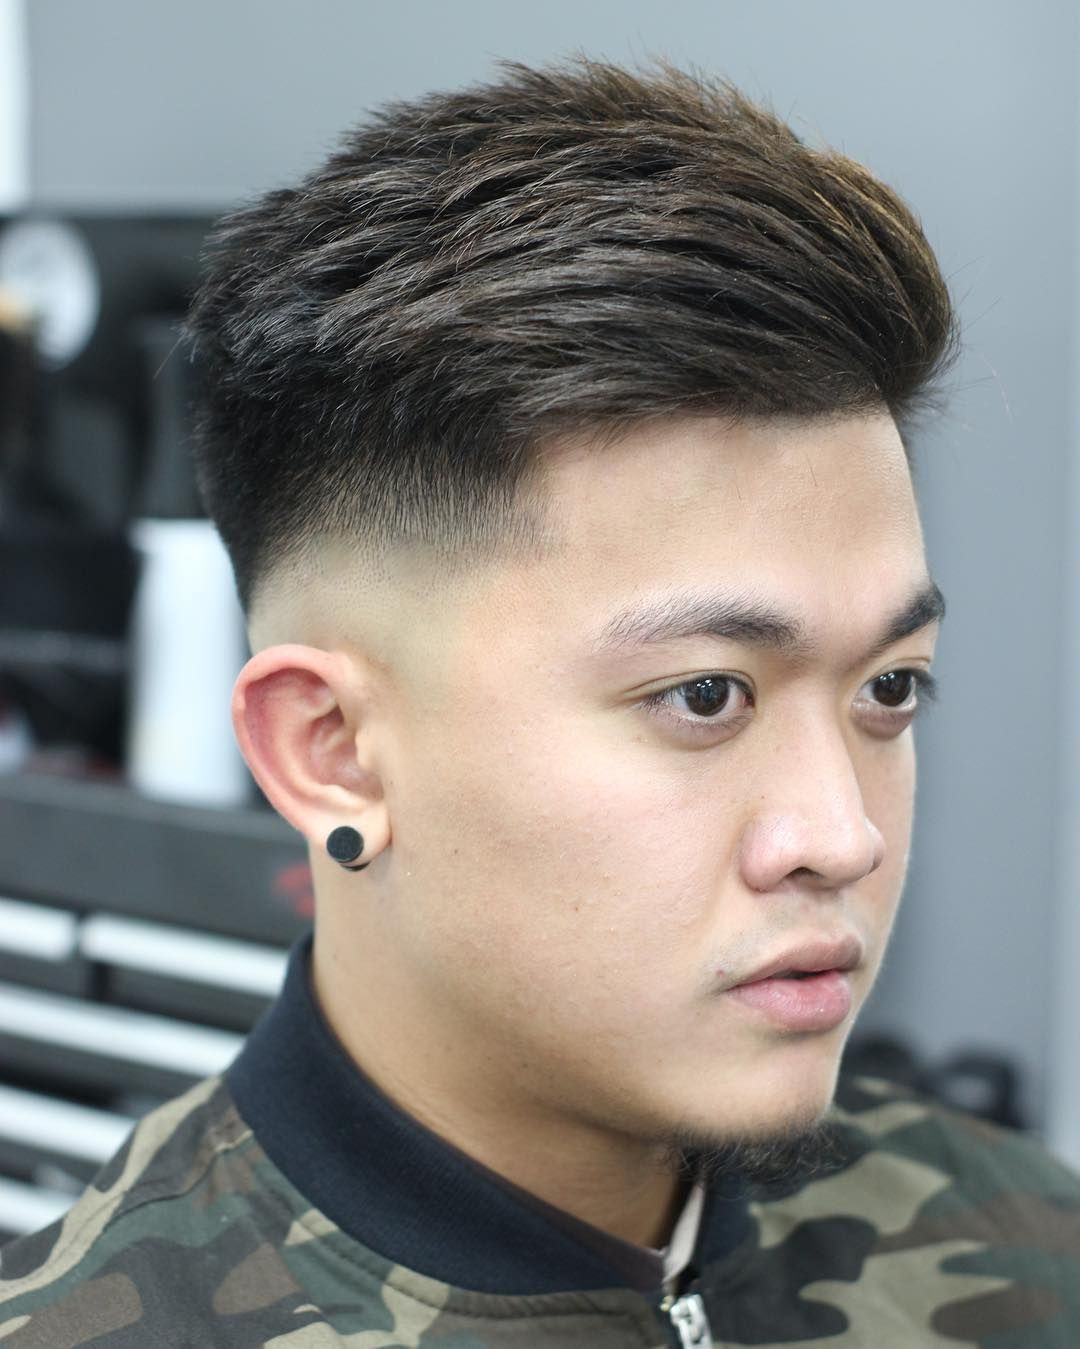 Asian Man Hairstyle